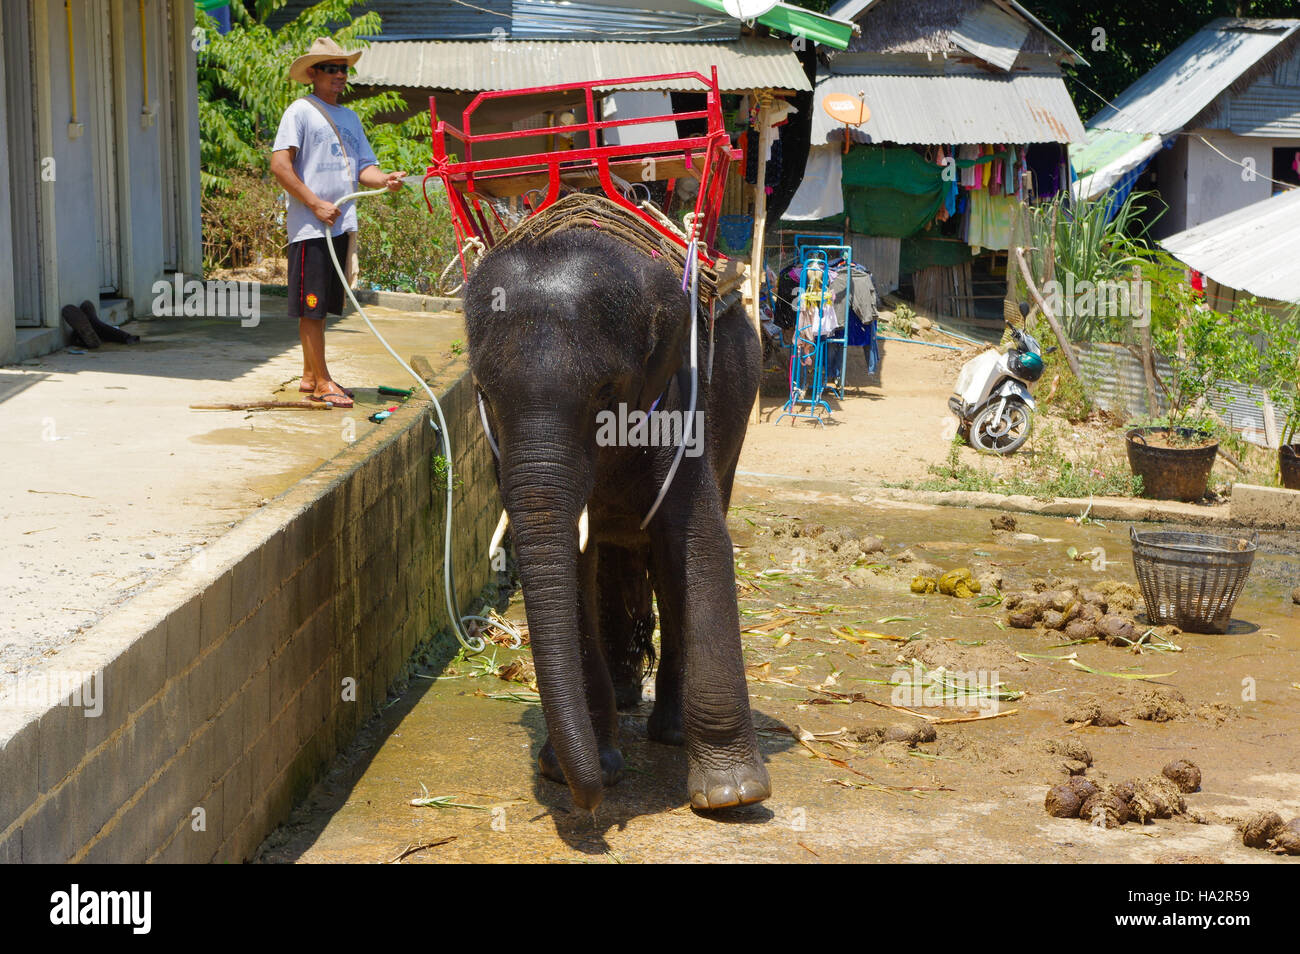 PHUKET, THAILAND - MARCH 28, 2016: baby elephant after washing at a hot day. - Stock Image